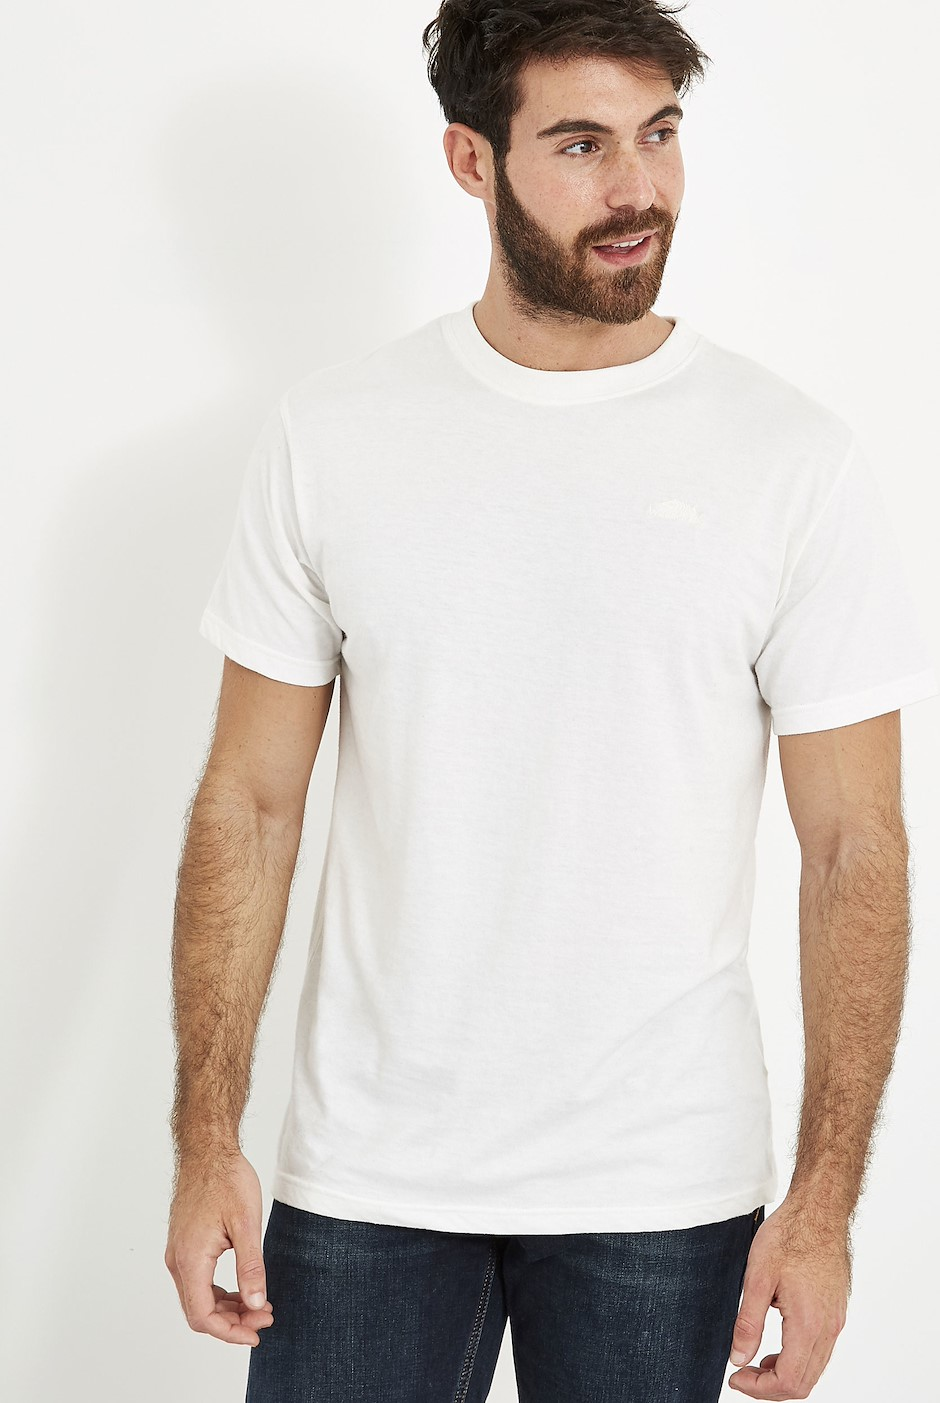 Fished T-Shirt Dusty White Marl